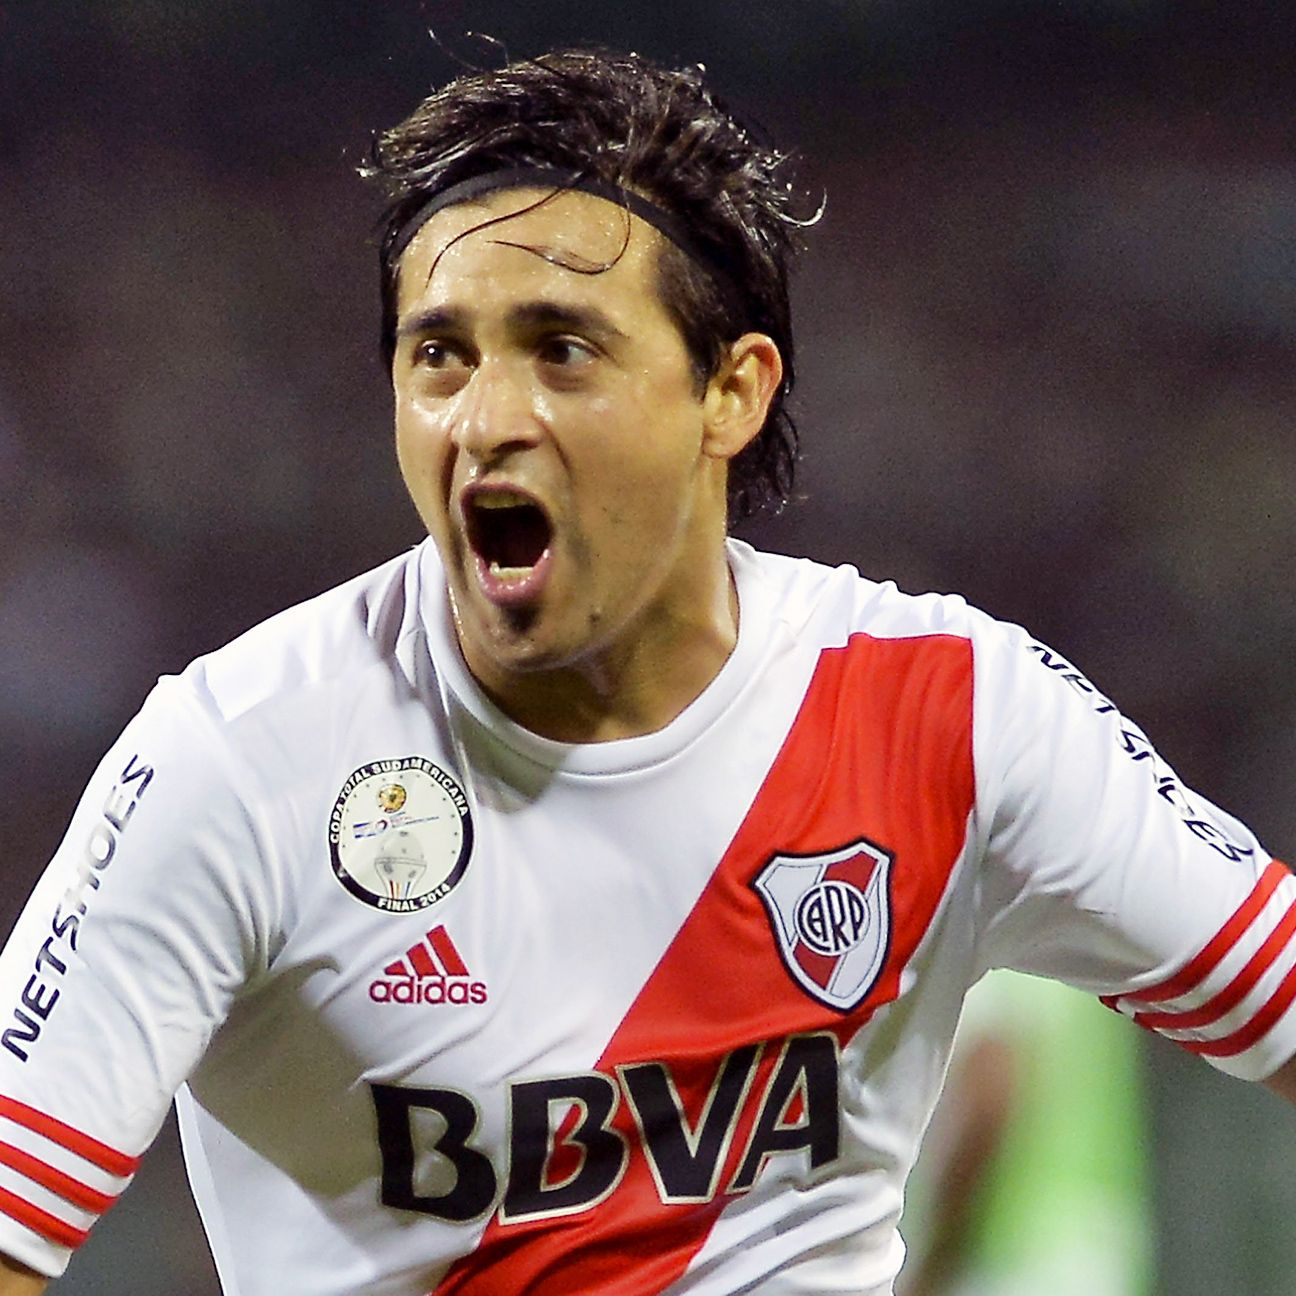 For the second time in less than a week, Leonardo Pisculichi came up big for River Plate, scoring in the second half of the Copa Sudamericana final first leg versus Atletico Nacional on Wednesday.